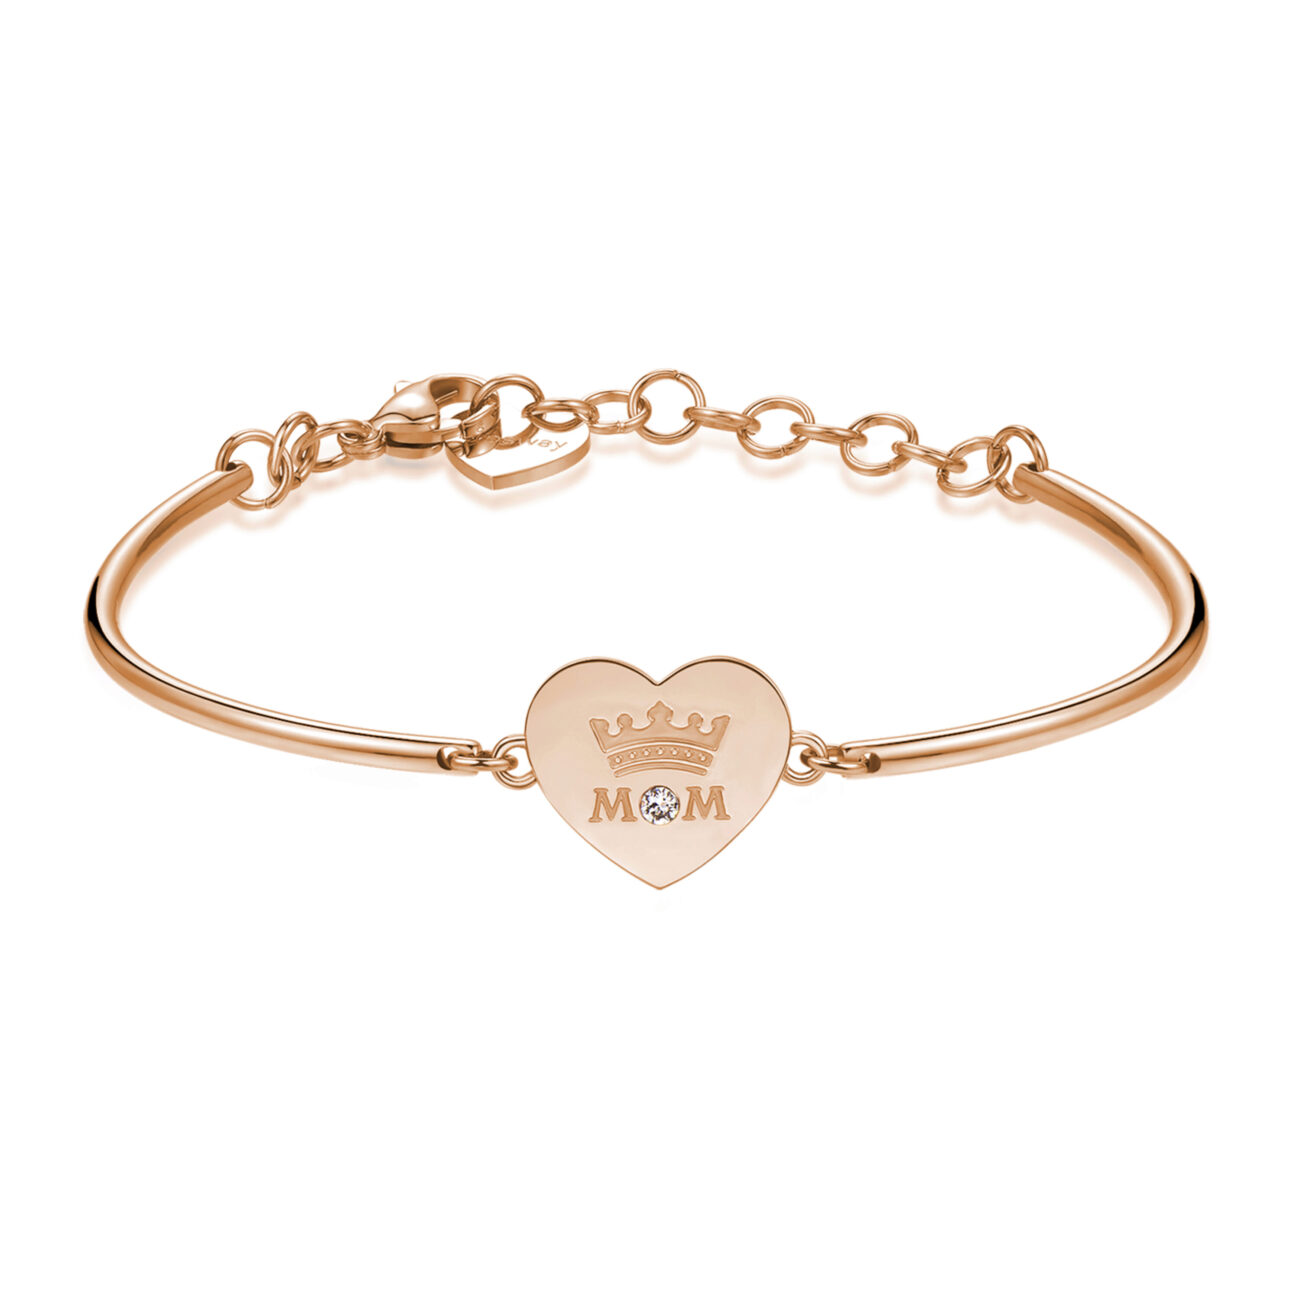 MOM: UNDERSTANDING, TENDERNESS, UNIQUENESSENGRAVINGS:Mom (front) - You are my Queen (back)The first, true, great, endless love is always and only for her—our mom. An unbreakable bond. Pure, unconditional and eternal love.316L stainless steel, rose gold PVD and Swarovski® crystal.